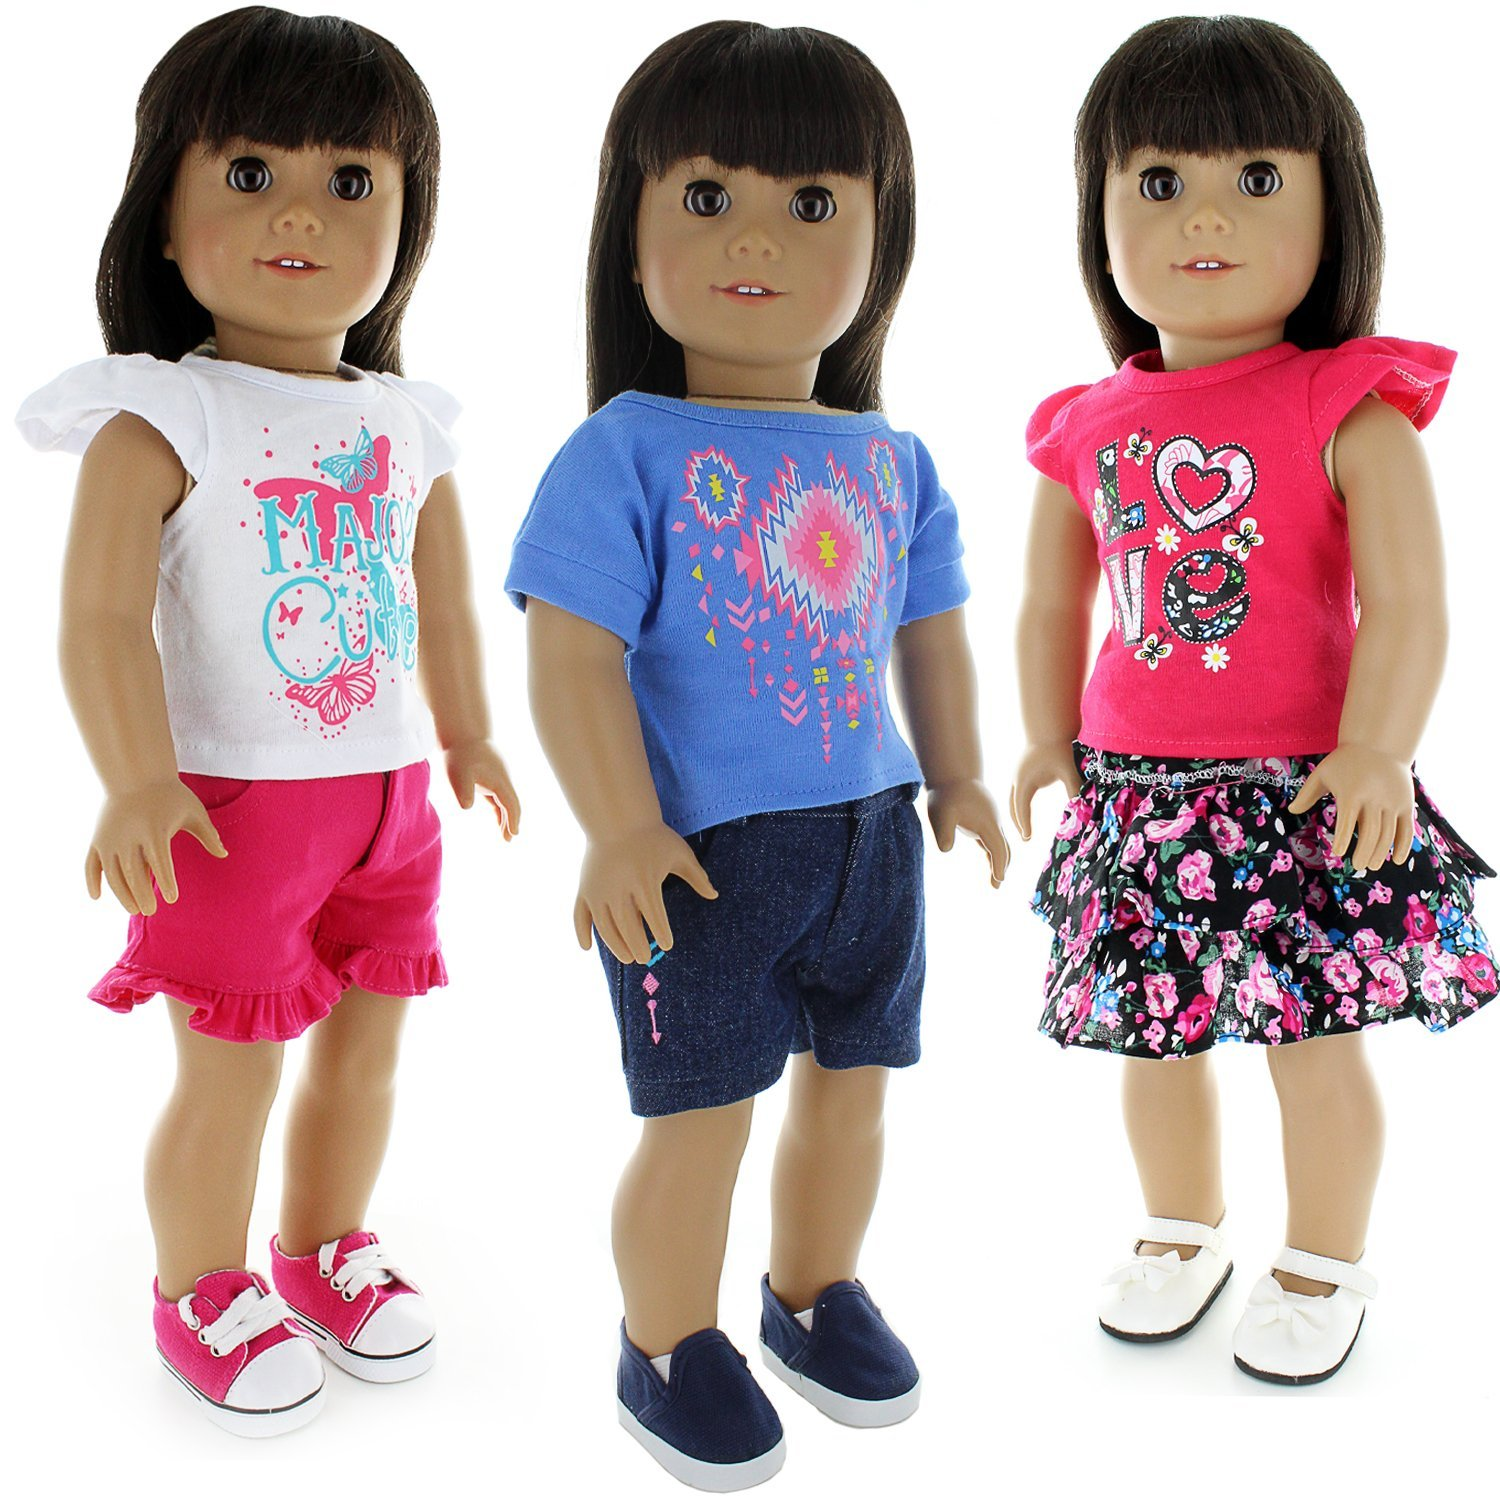 Doll Clothes 3-Set Dresses Outfit Fits American Girl & Other 18 Inch Dolls